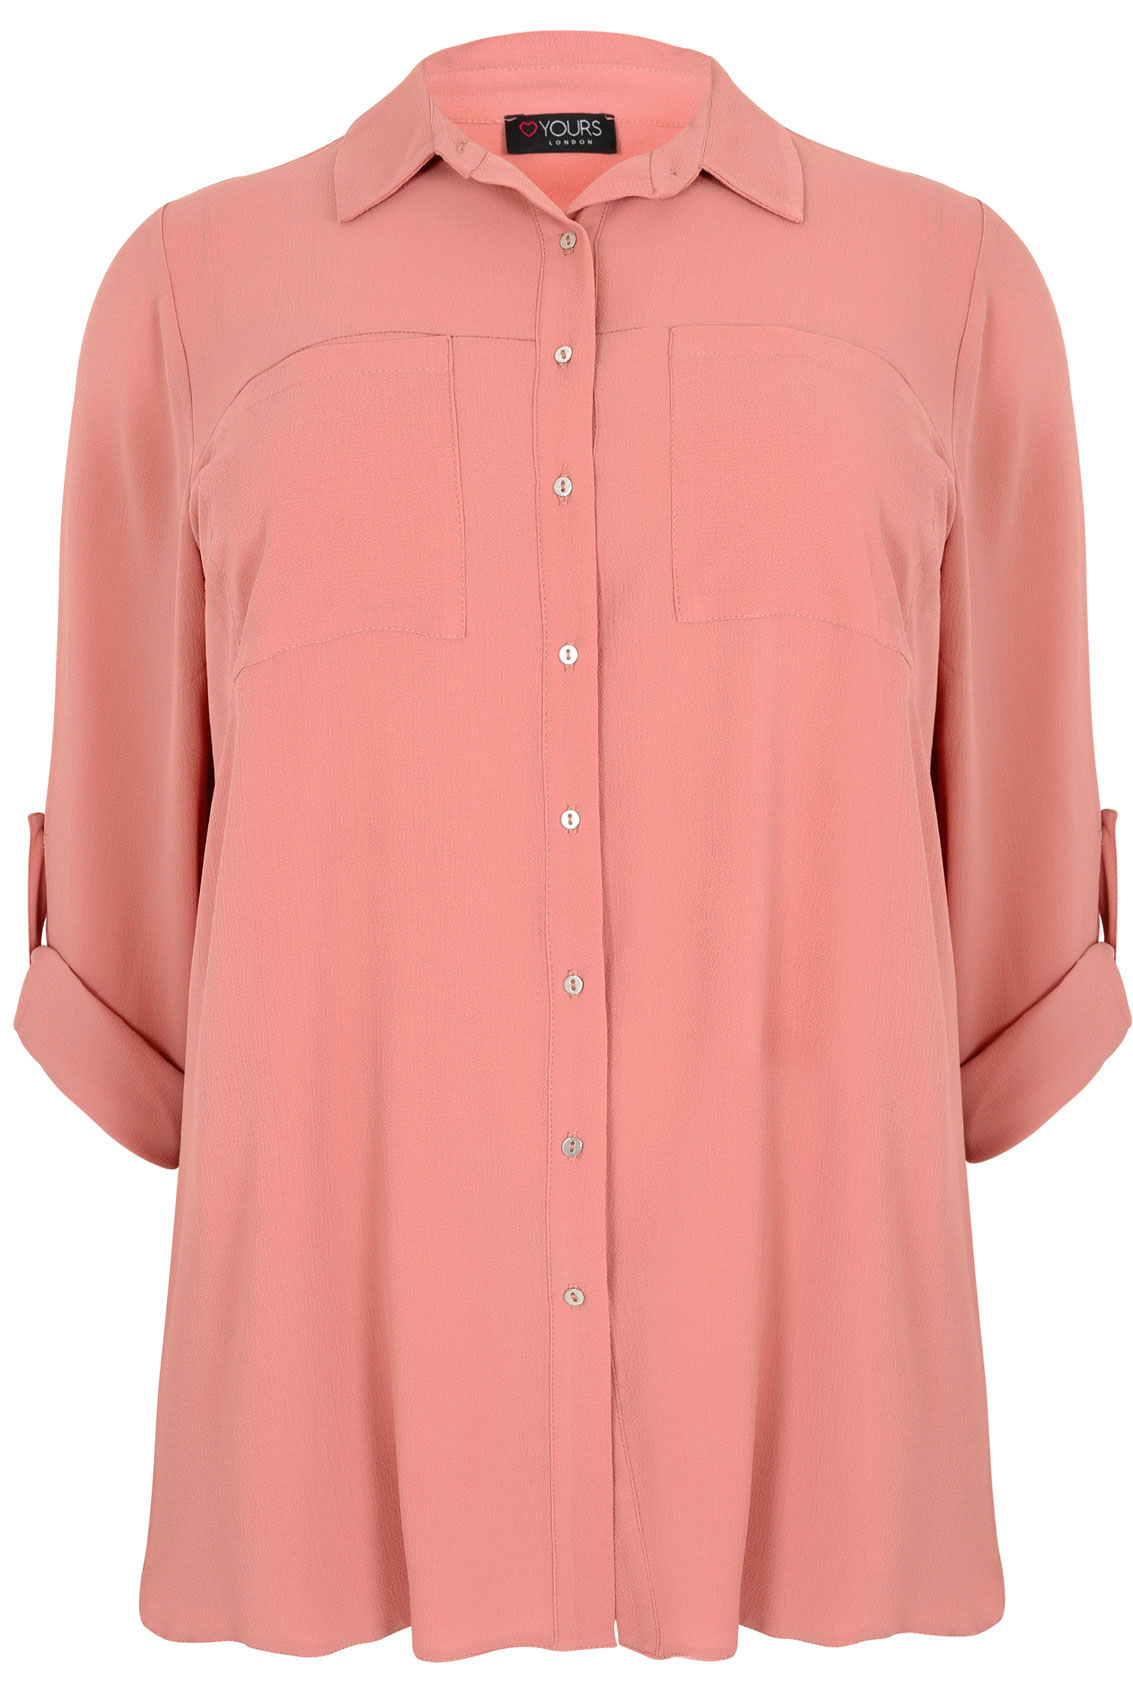 dusky pink button up crepe shirt with pockets split side